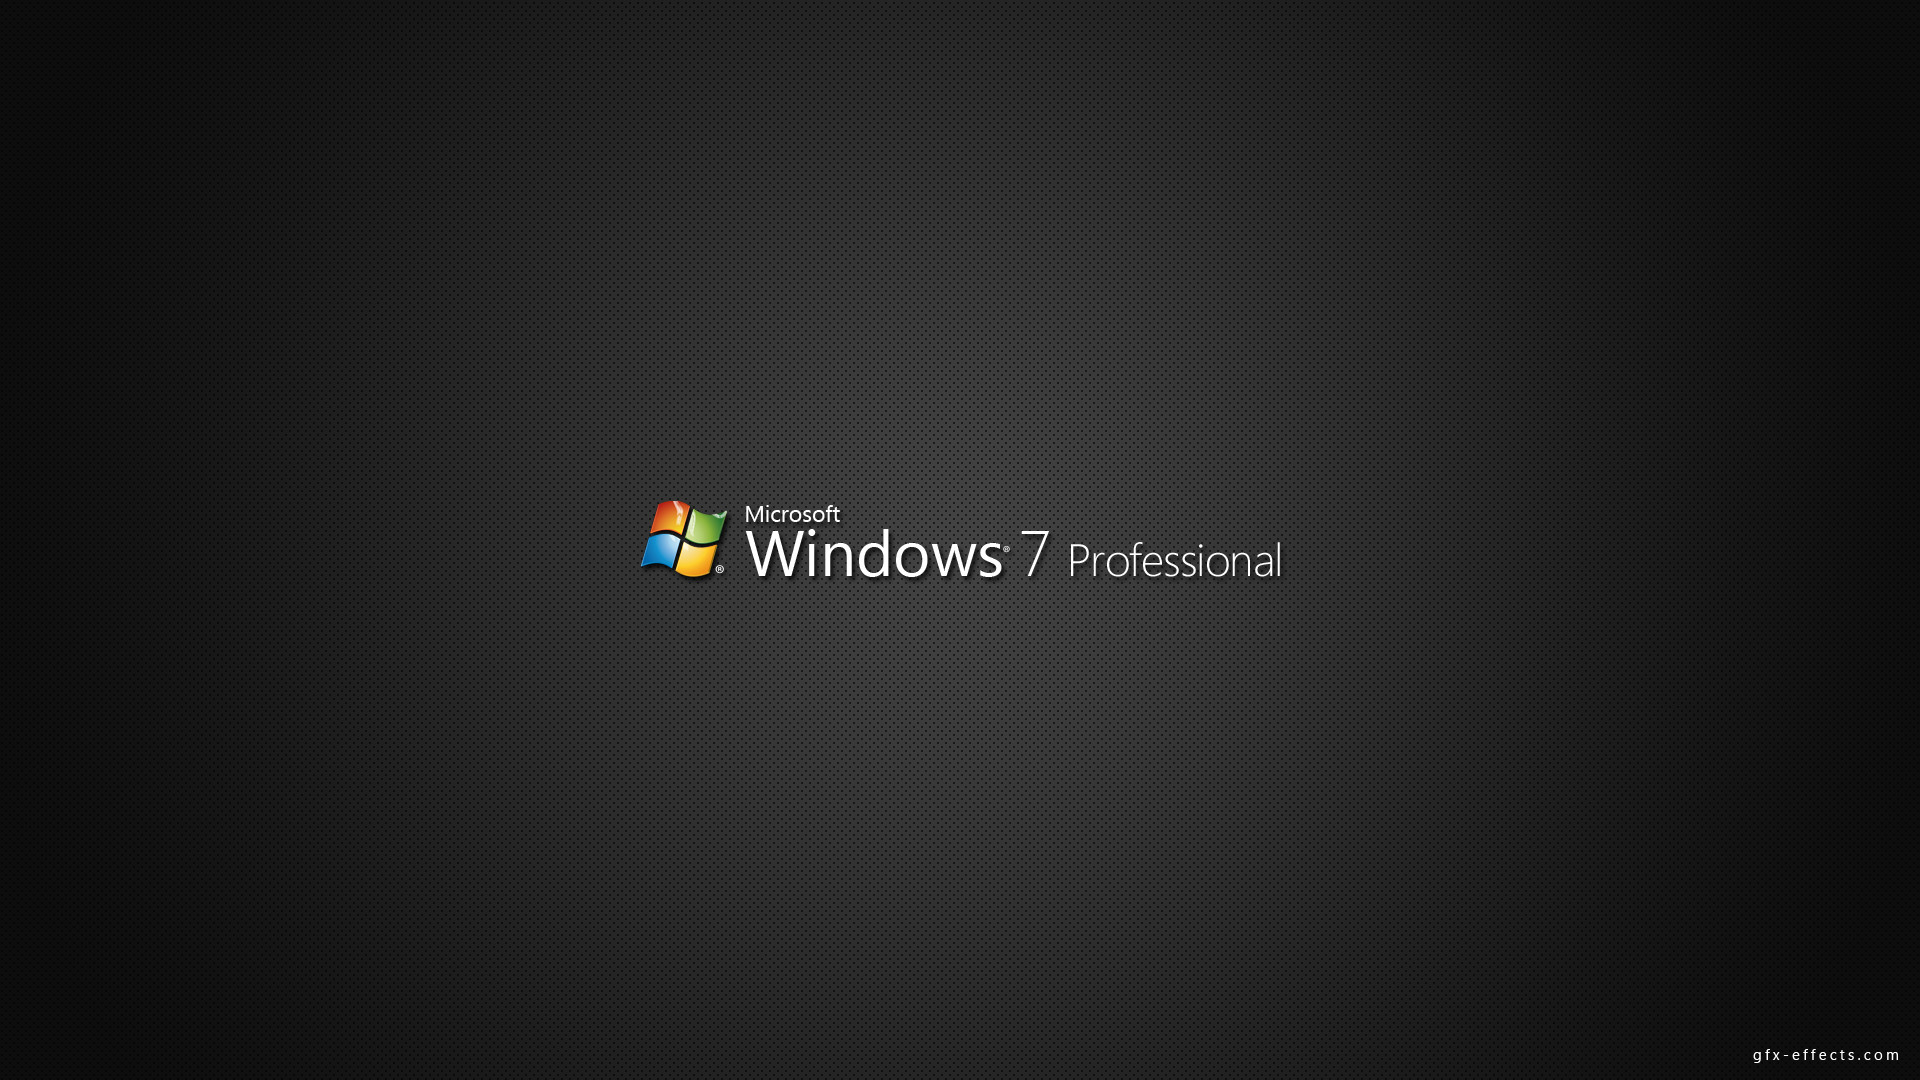 1920x1080 Windows 7 Ultimate Logo wallpaper 2372